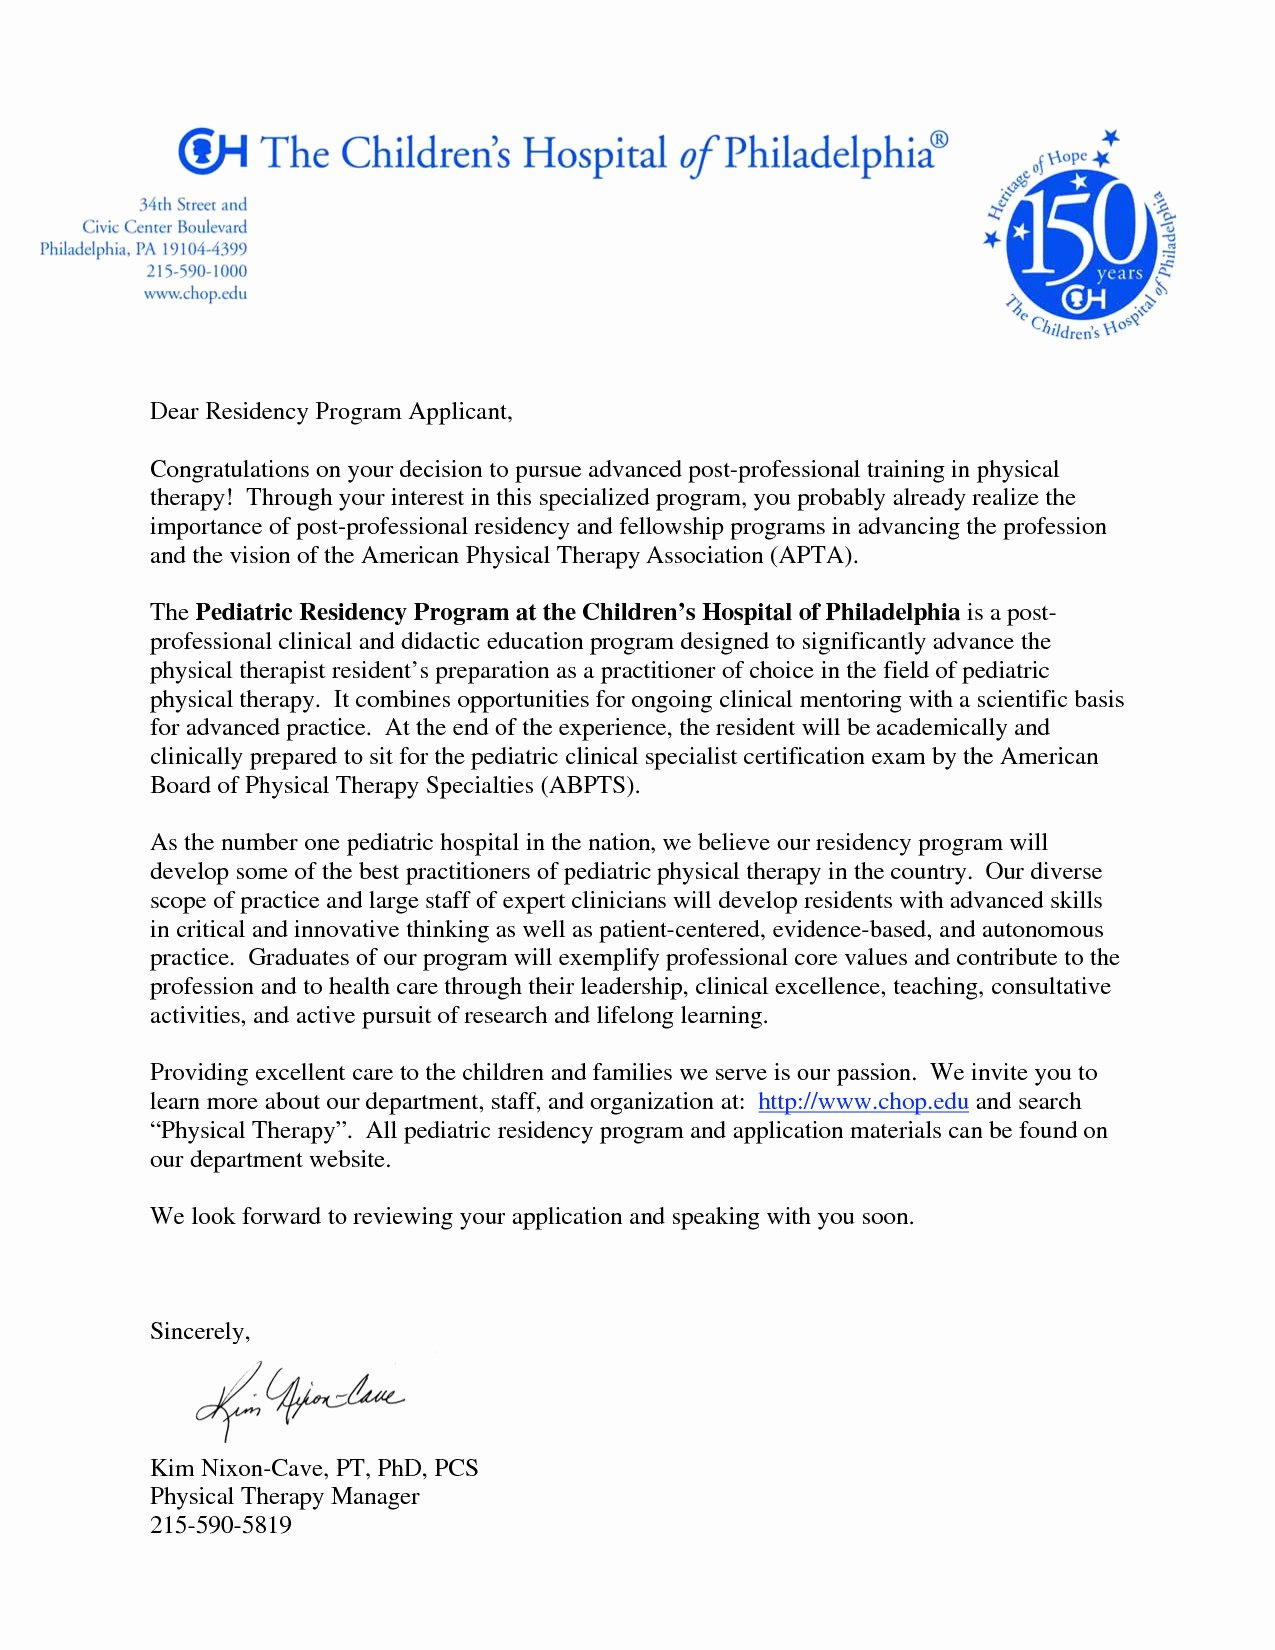 Occupational therapy Letter Of Recommendation Luxury Letter Re Mendation for Physical therapy School